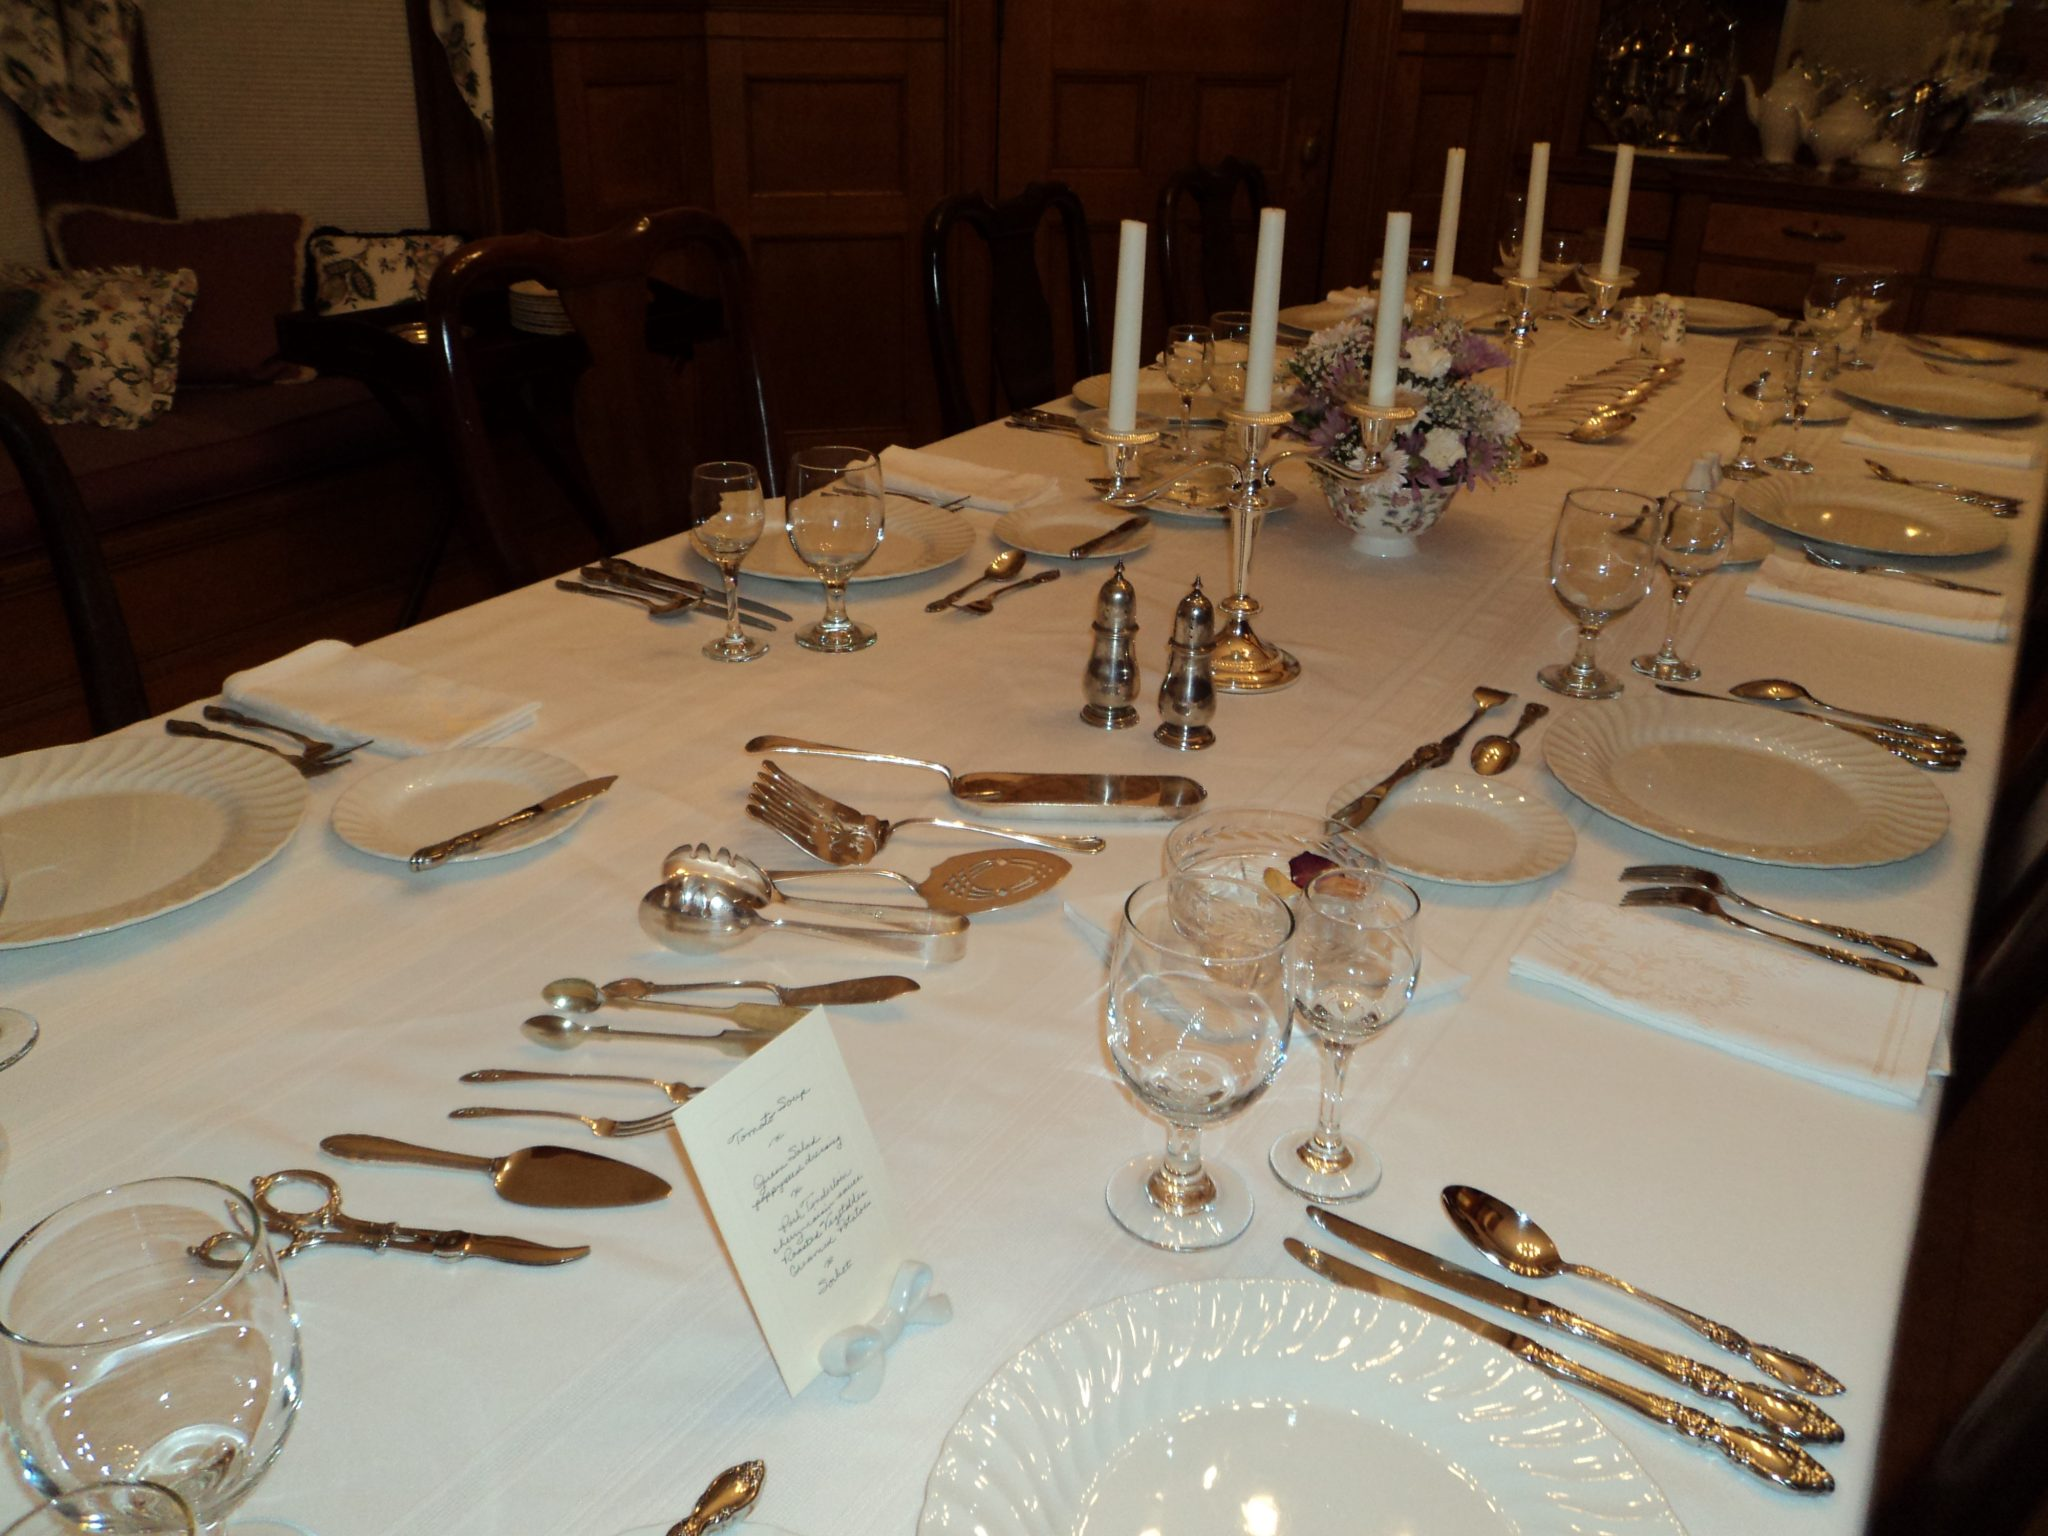 downton abbey inspired dinner and etiquette talk, part 3 -